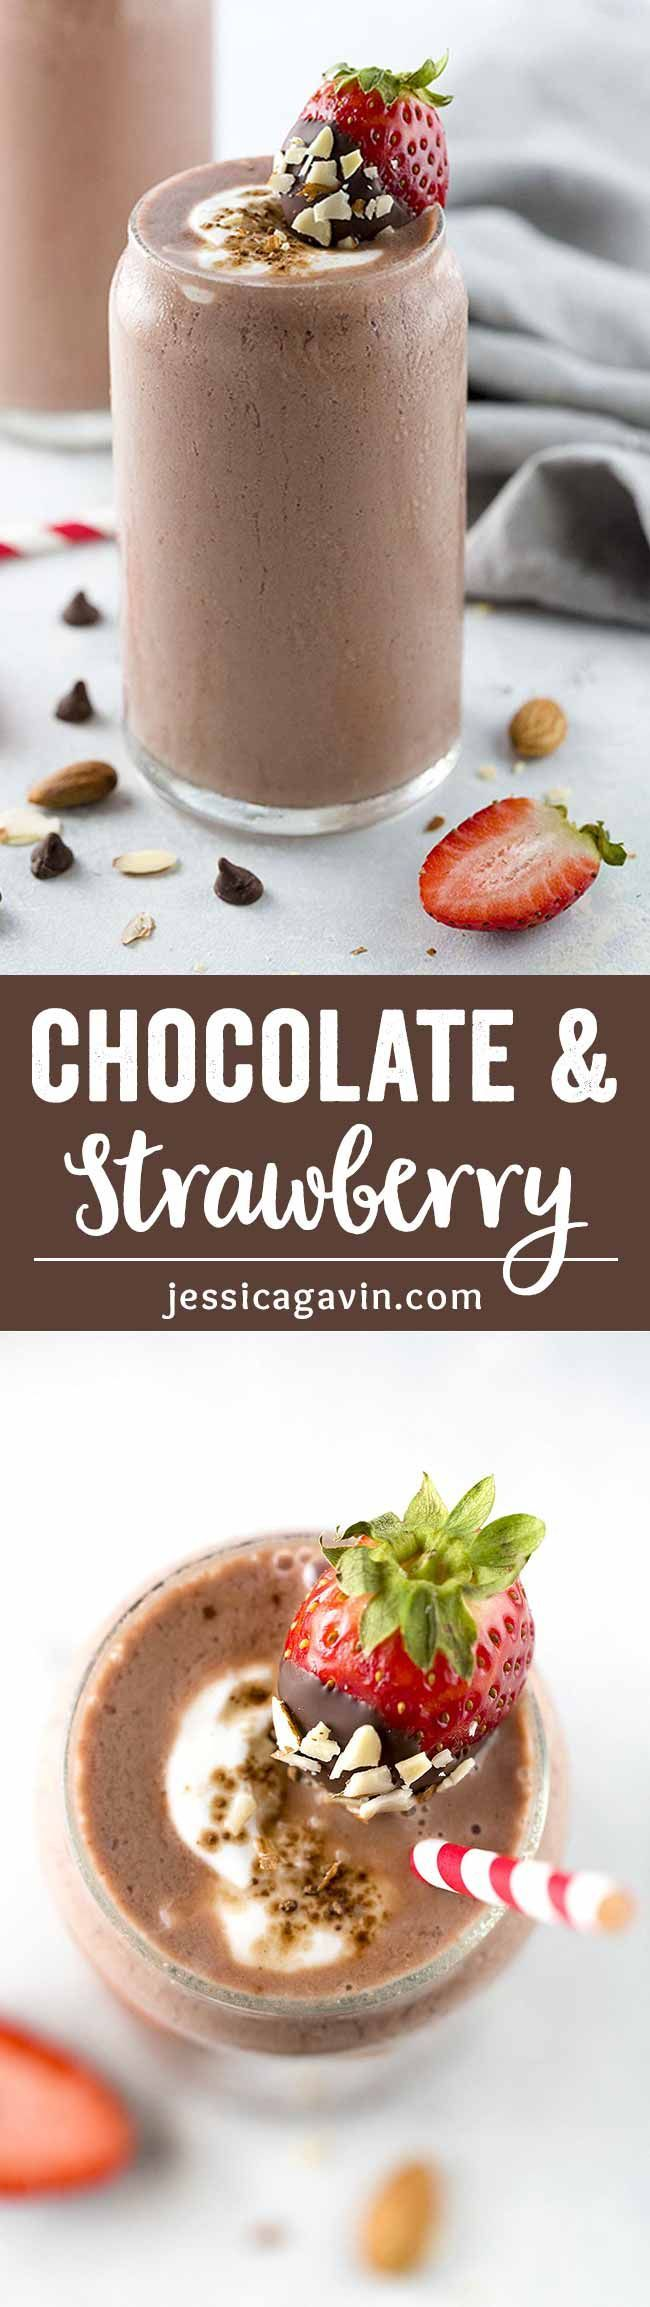 Chocolate Covered Strawberry Smoothie with Almonds - The perfect healthy beverage to share with that special someone! A cool creamy blend of cocoa, strawberries, almonds, bananas and flaxseed. via @foodiegavin